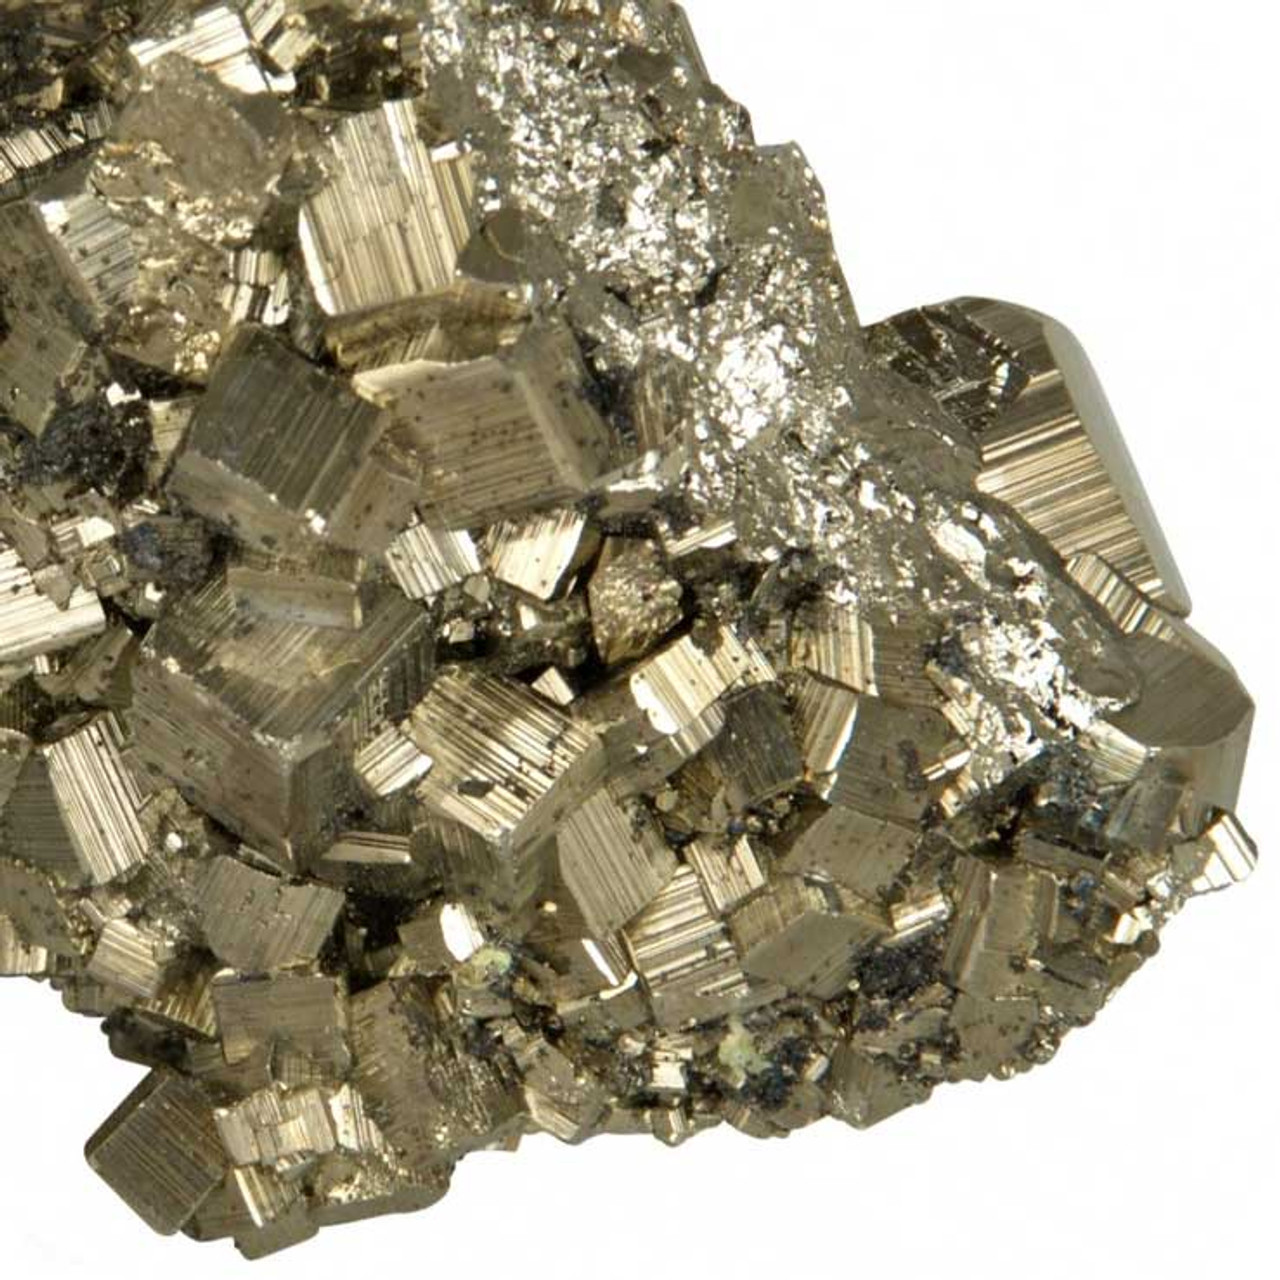 Mining Mike/'s fools gold Pyrite bottled child/'s science stocking filler